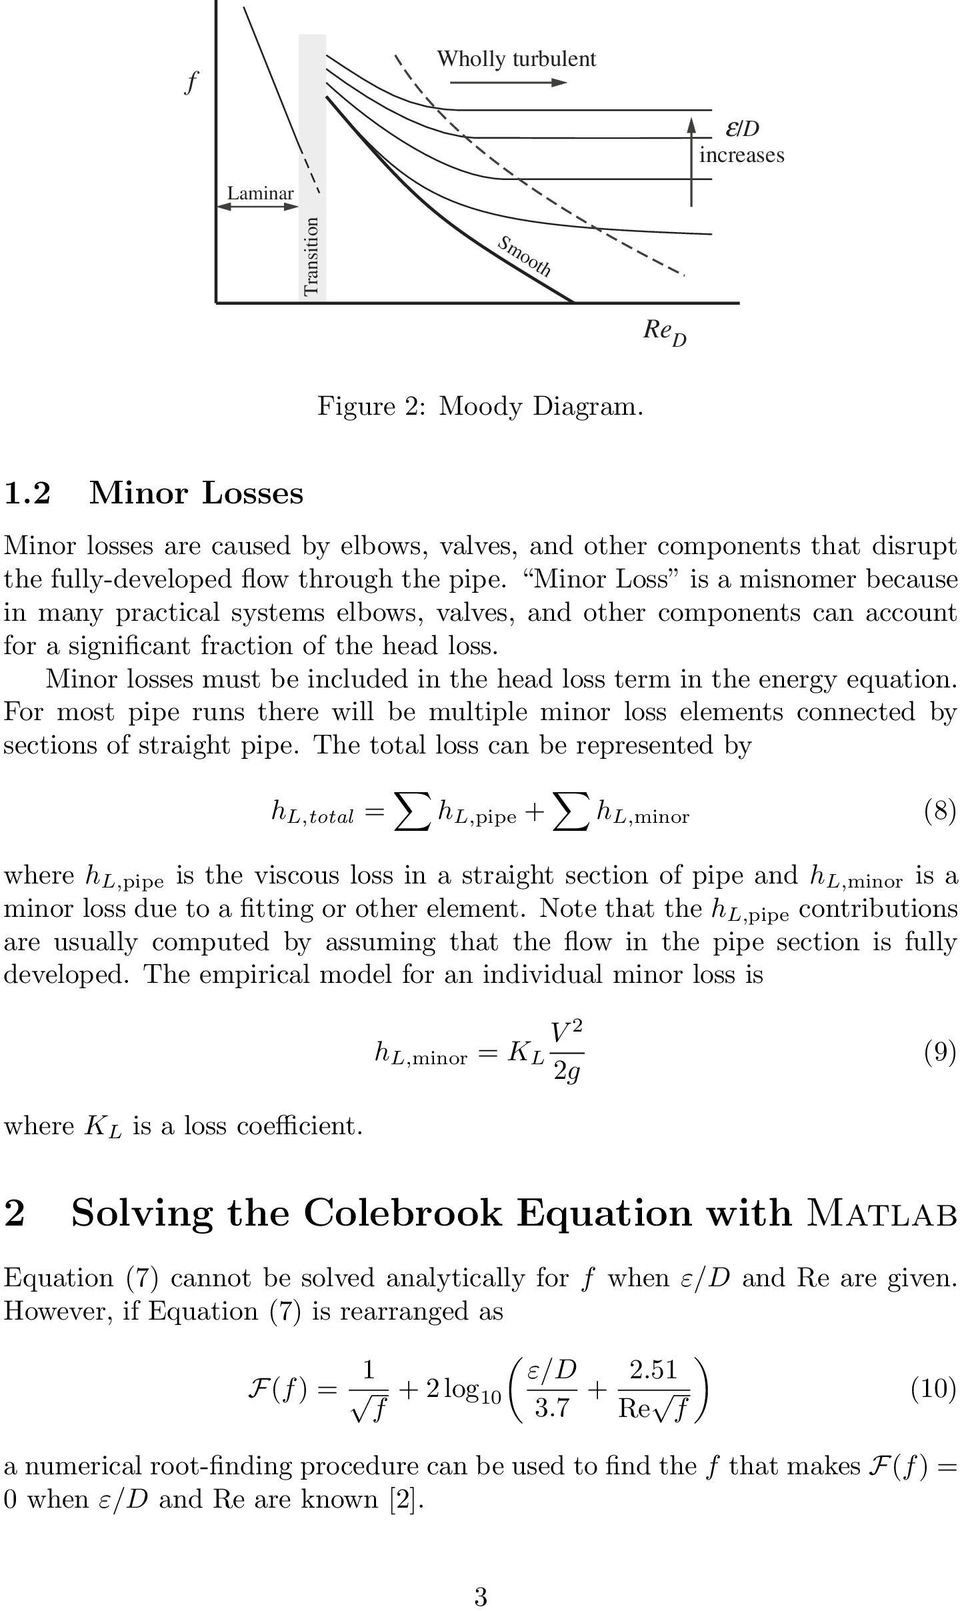 Pipe Flow Analysis with Matlab - PDF